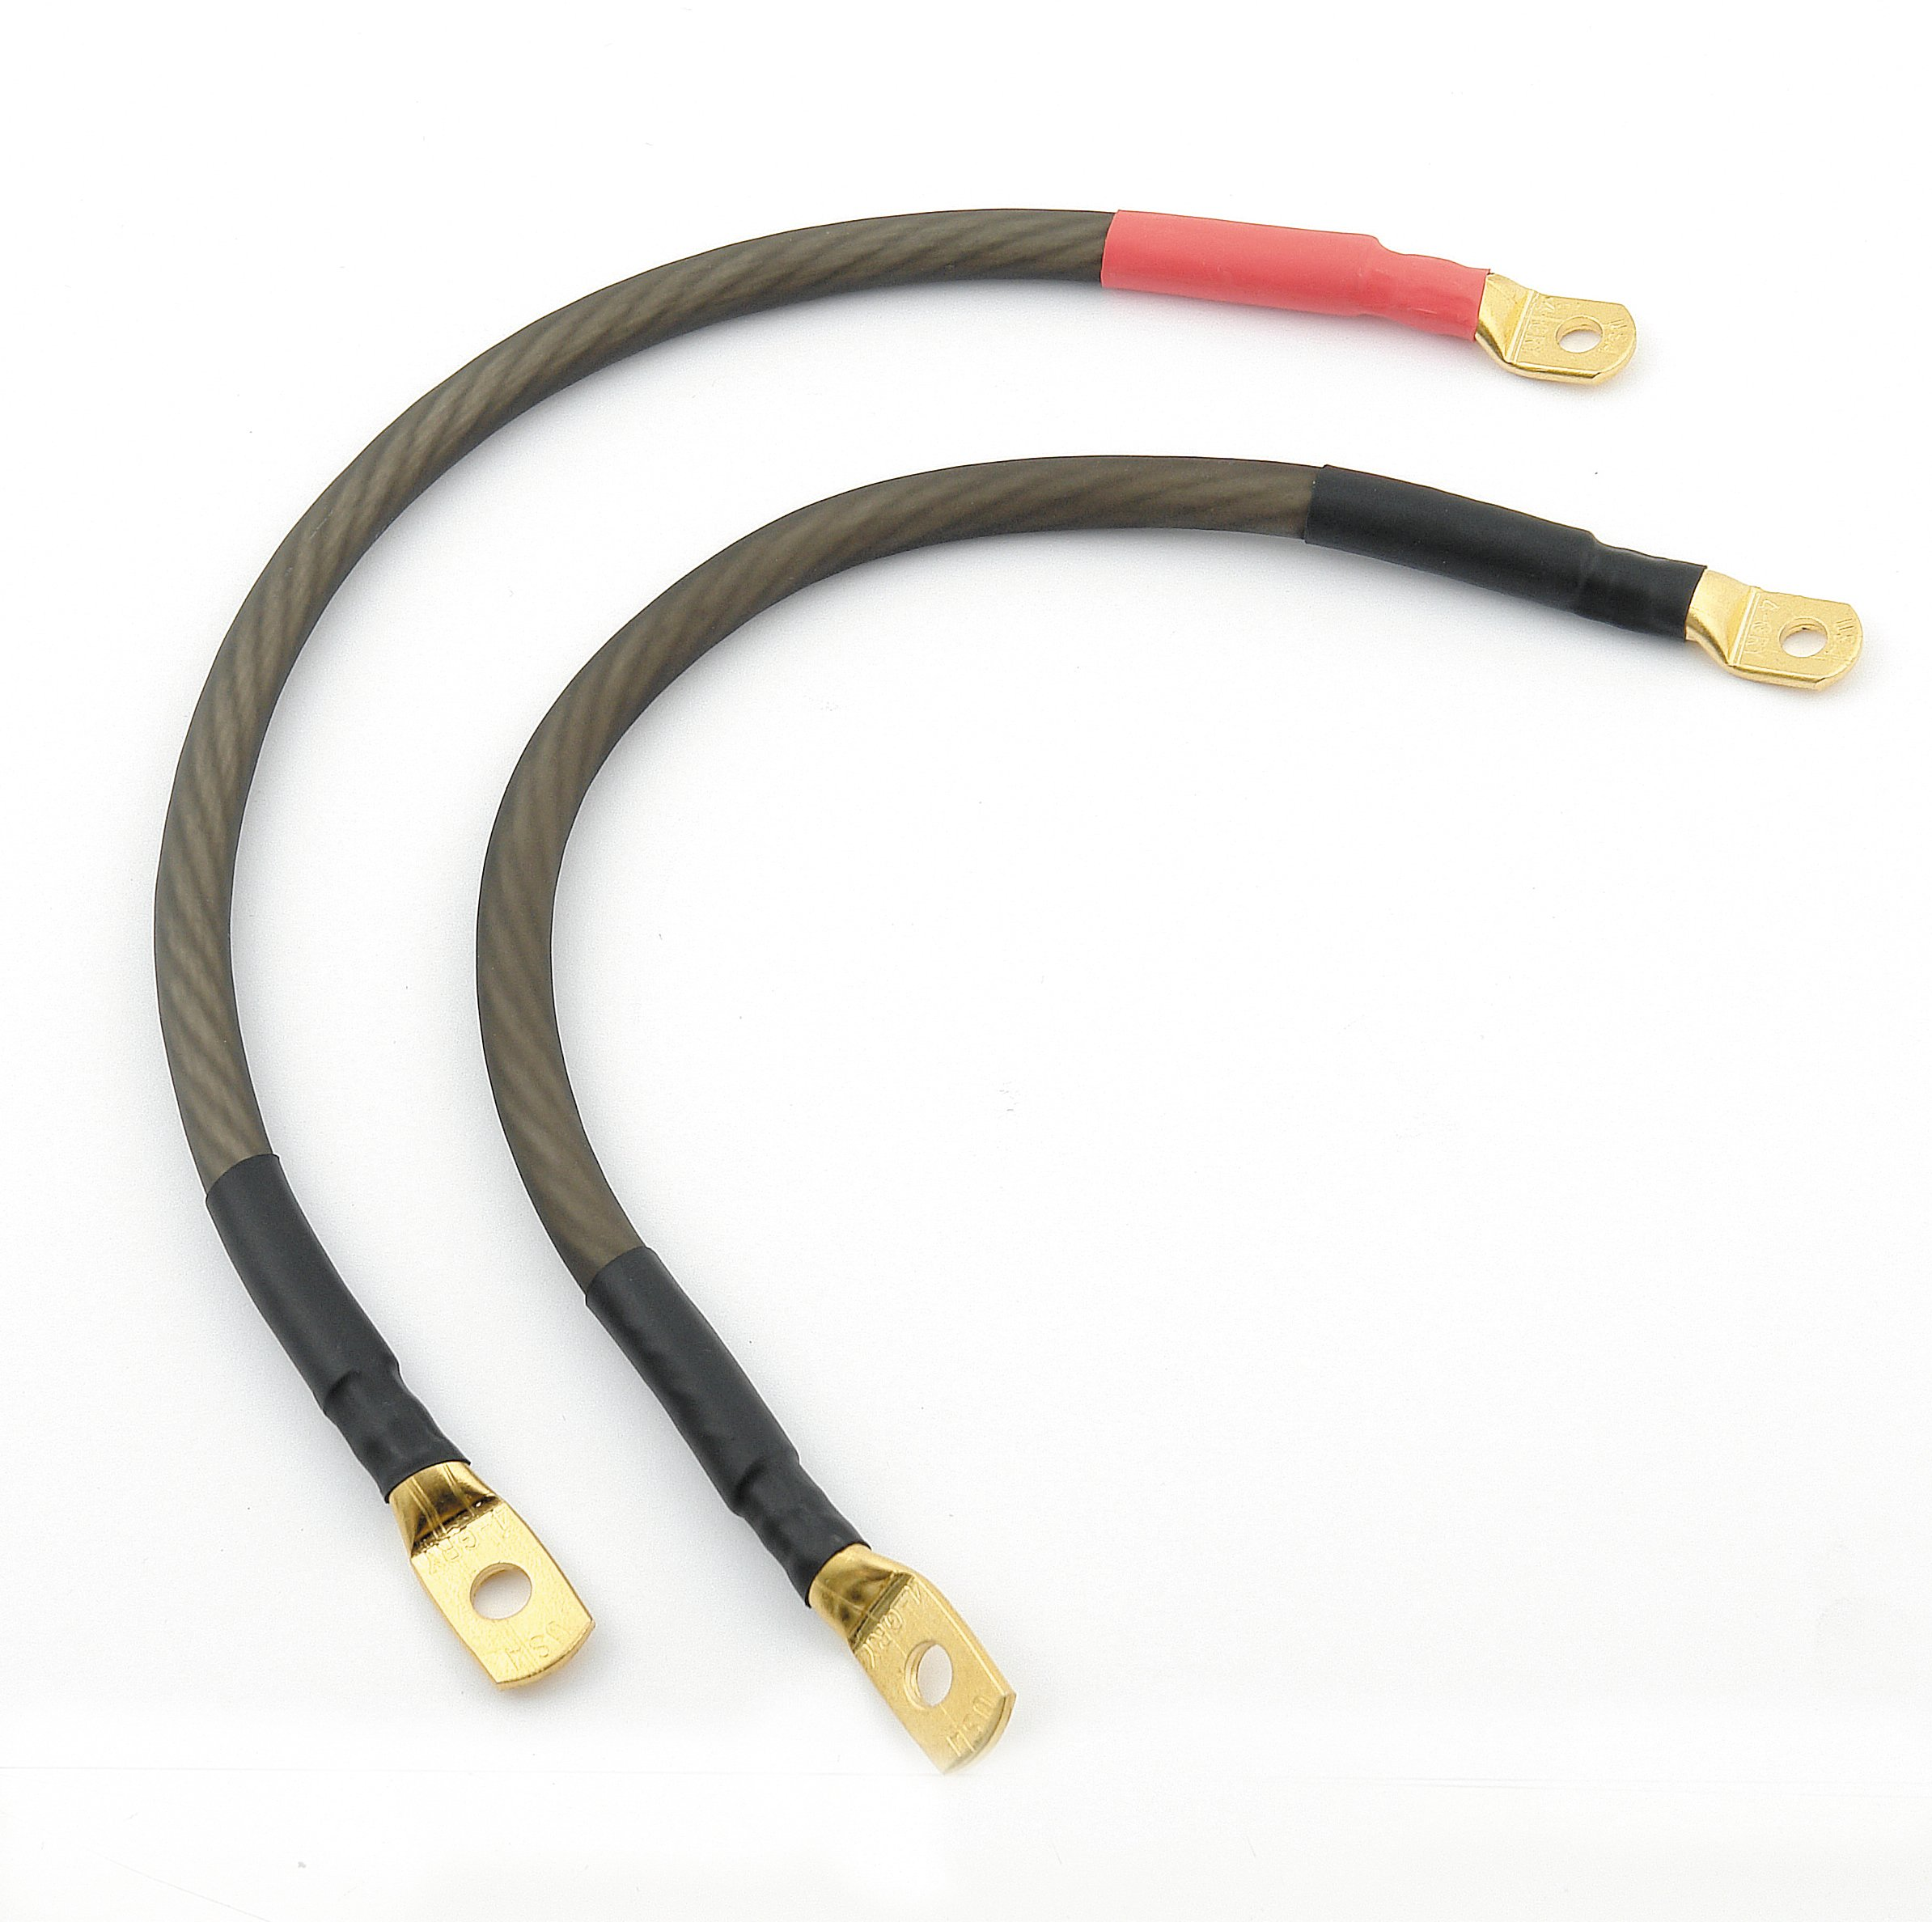 Parts Of Electrical Cables : Accel motorcycle battery cable set gold flt